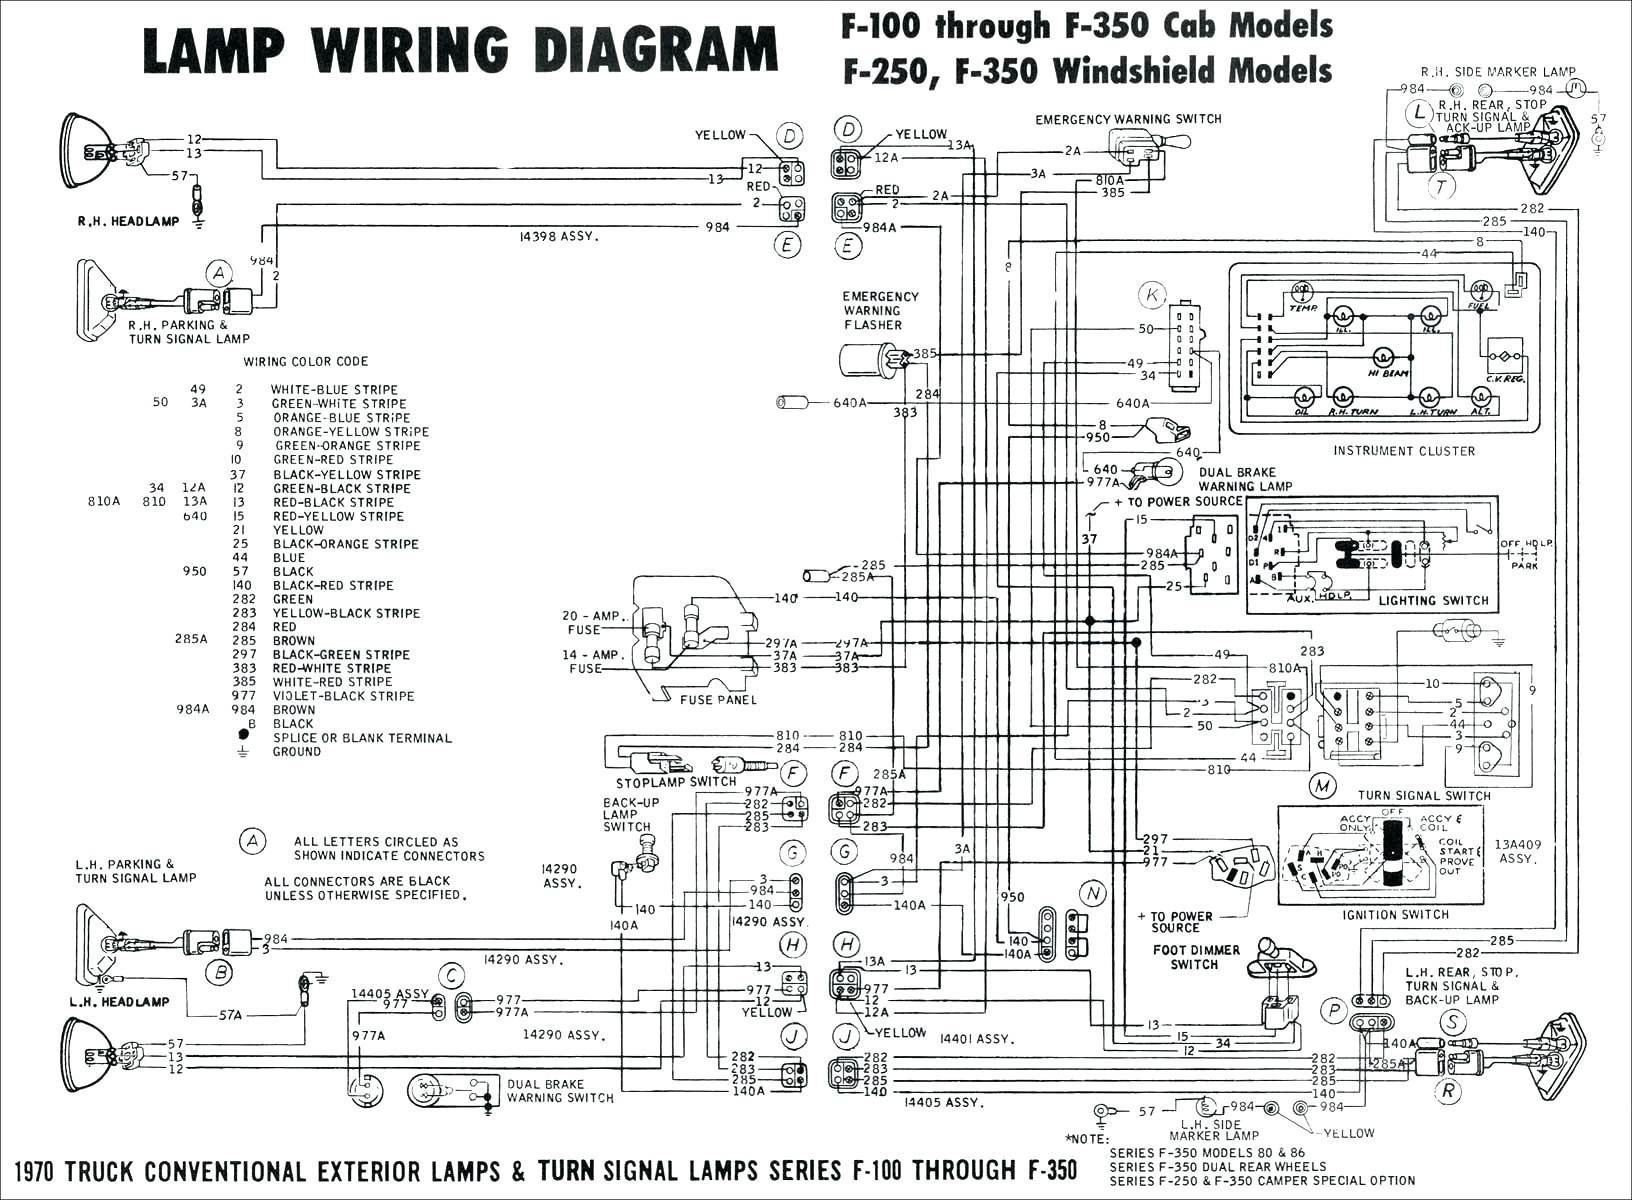 audi a4 starter motor wiring diagram save wiring diagram audi a4 b8 of starter motor wiring diagram